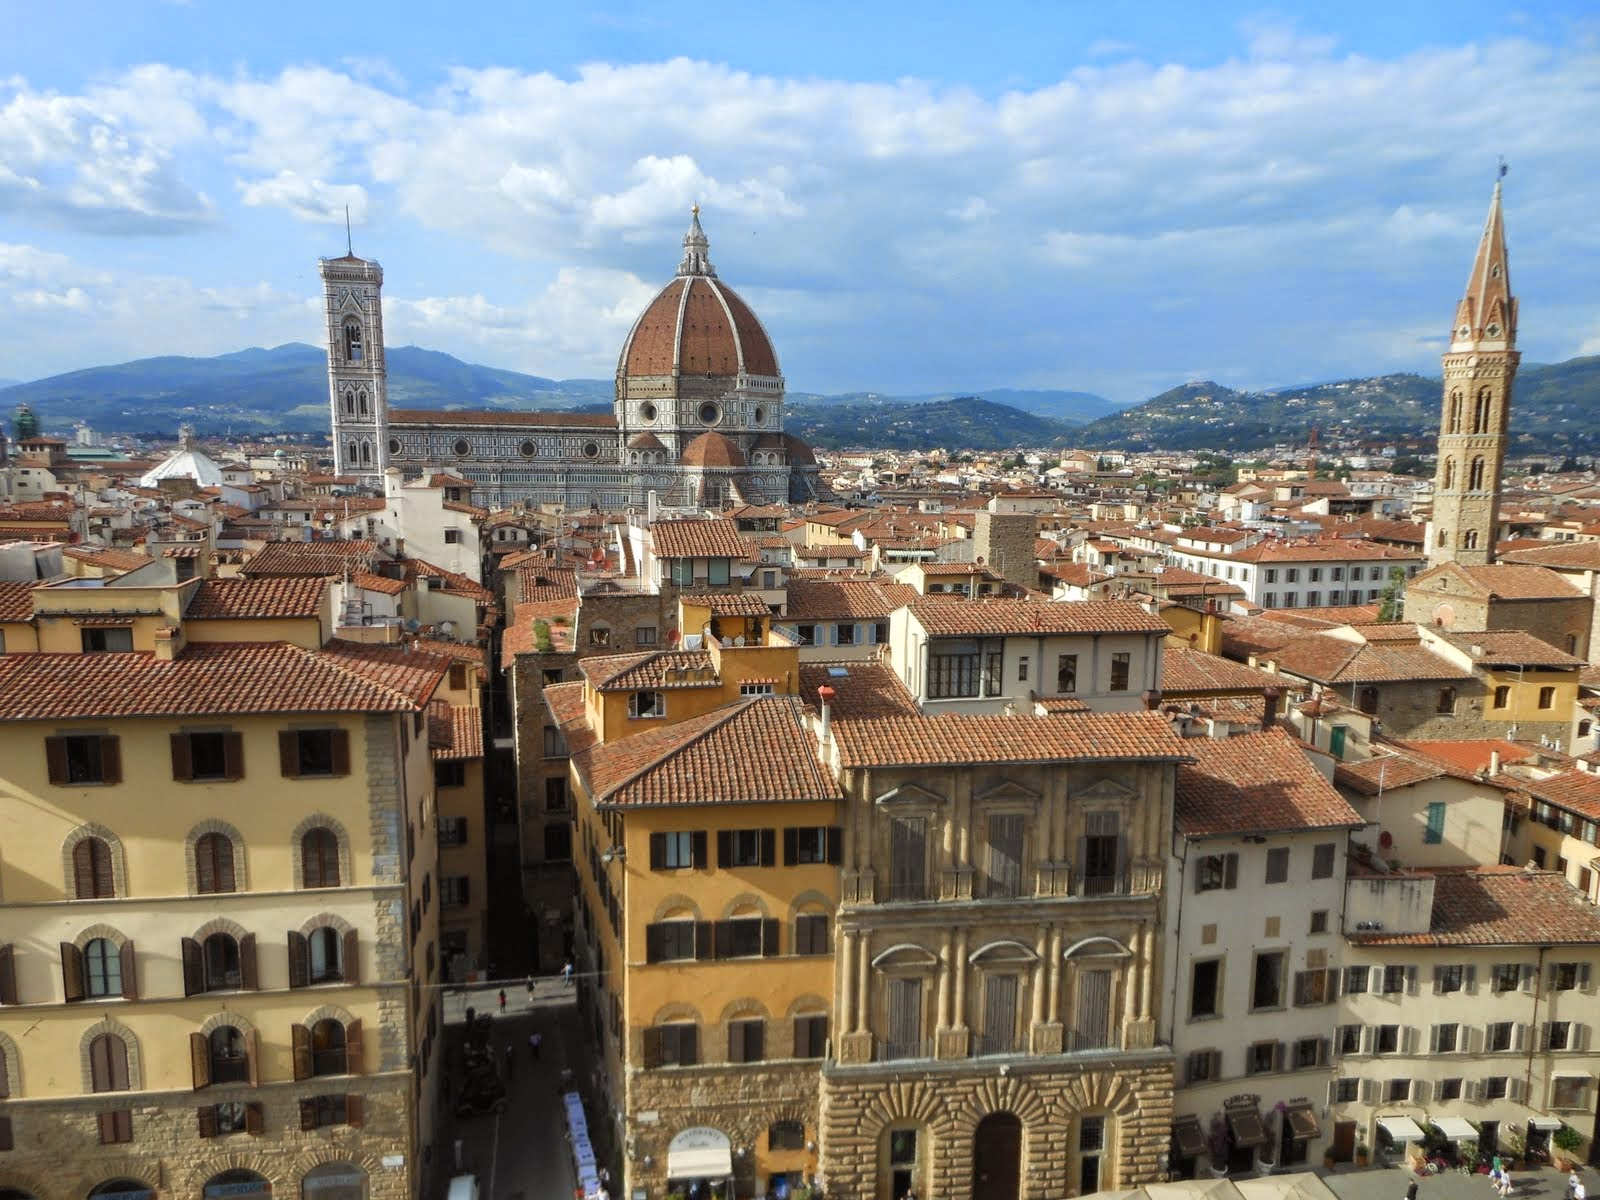 View along the climb up the Palazzo Vecchio tower